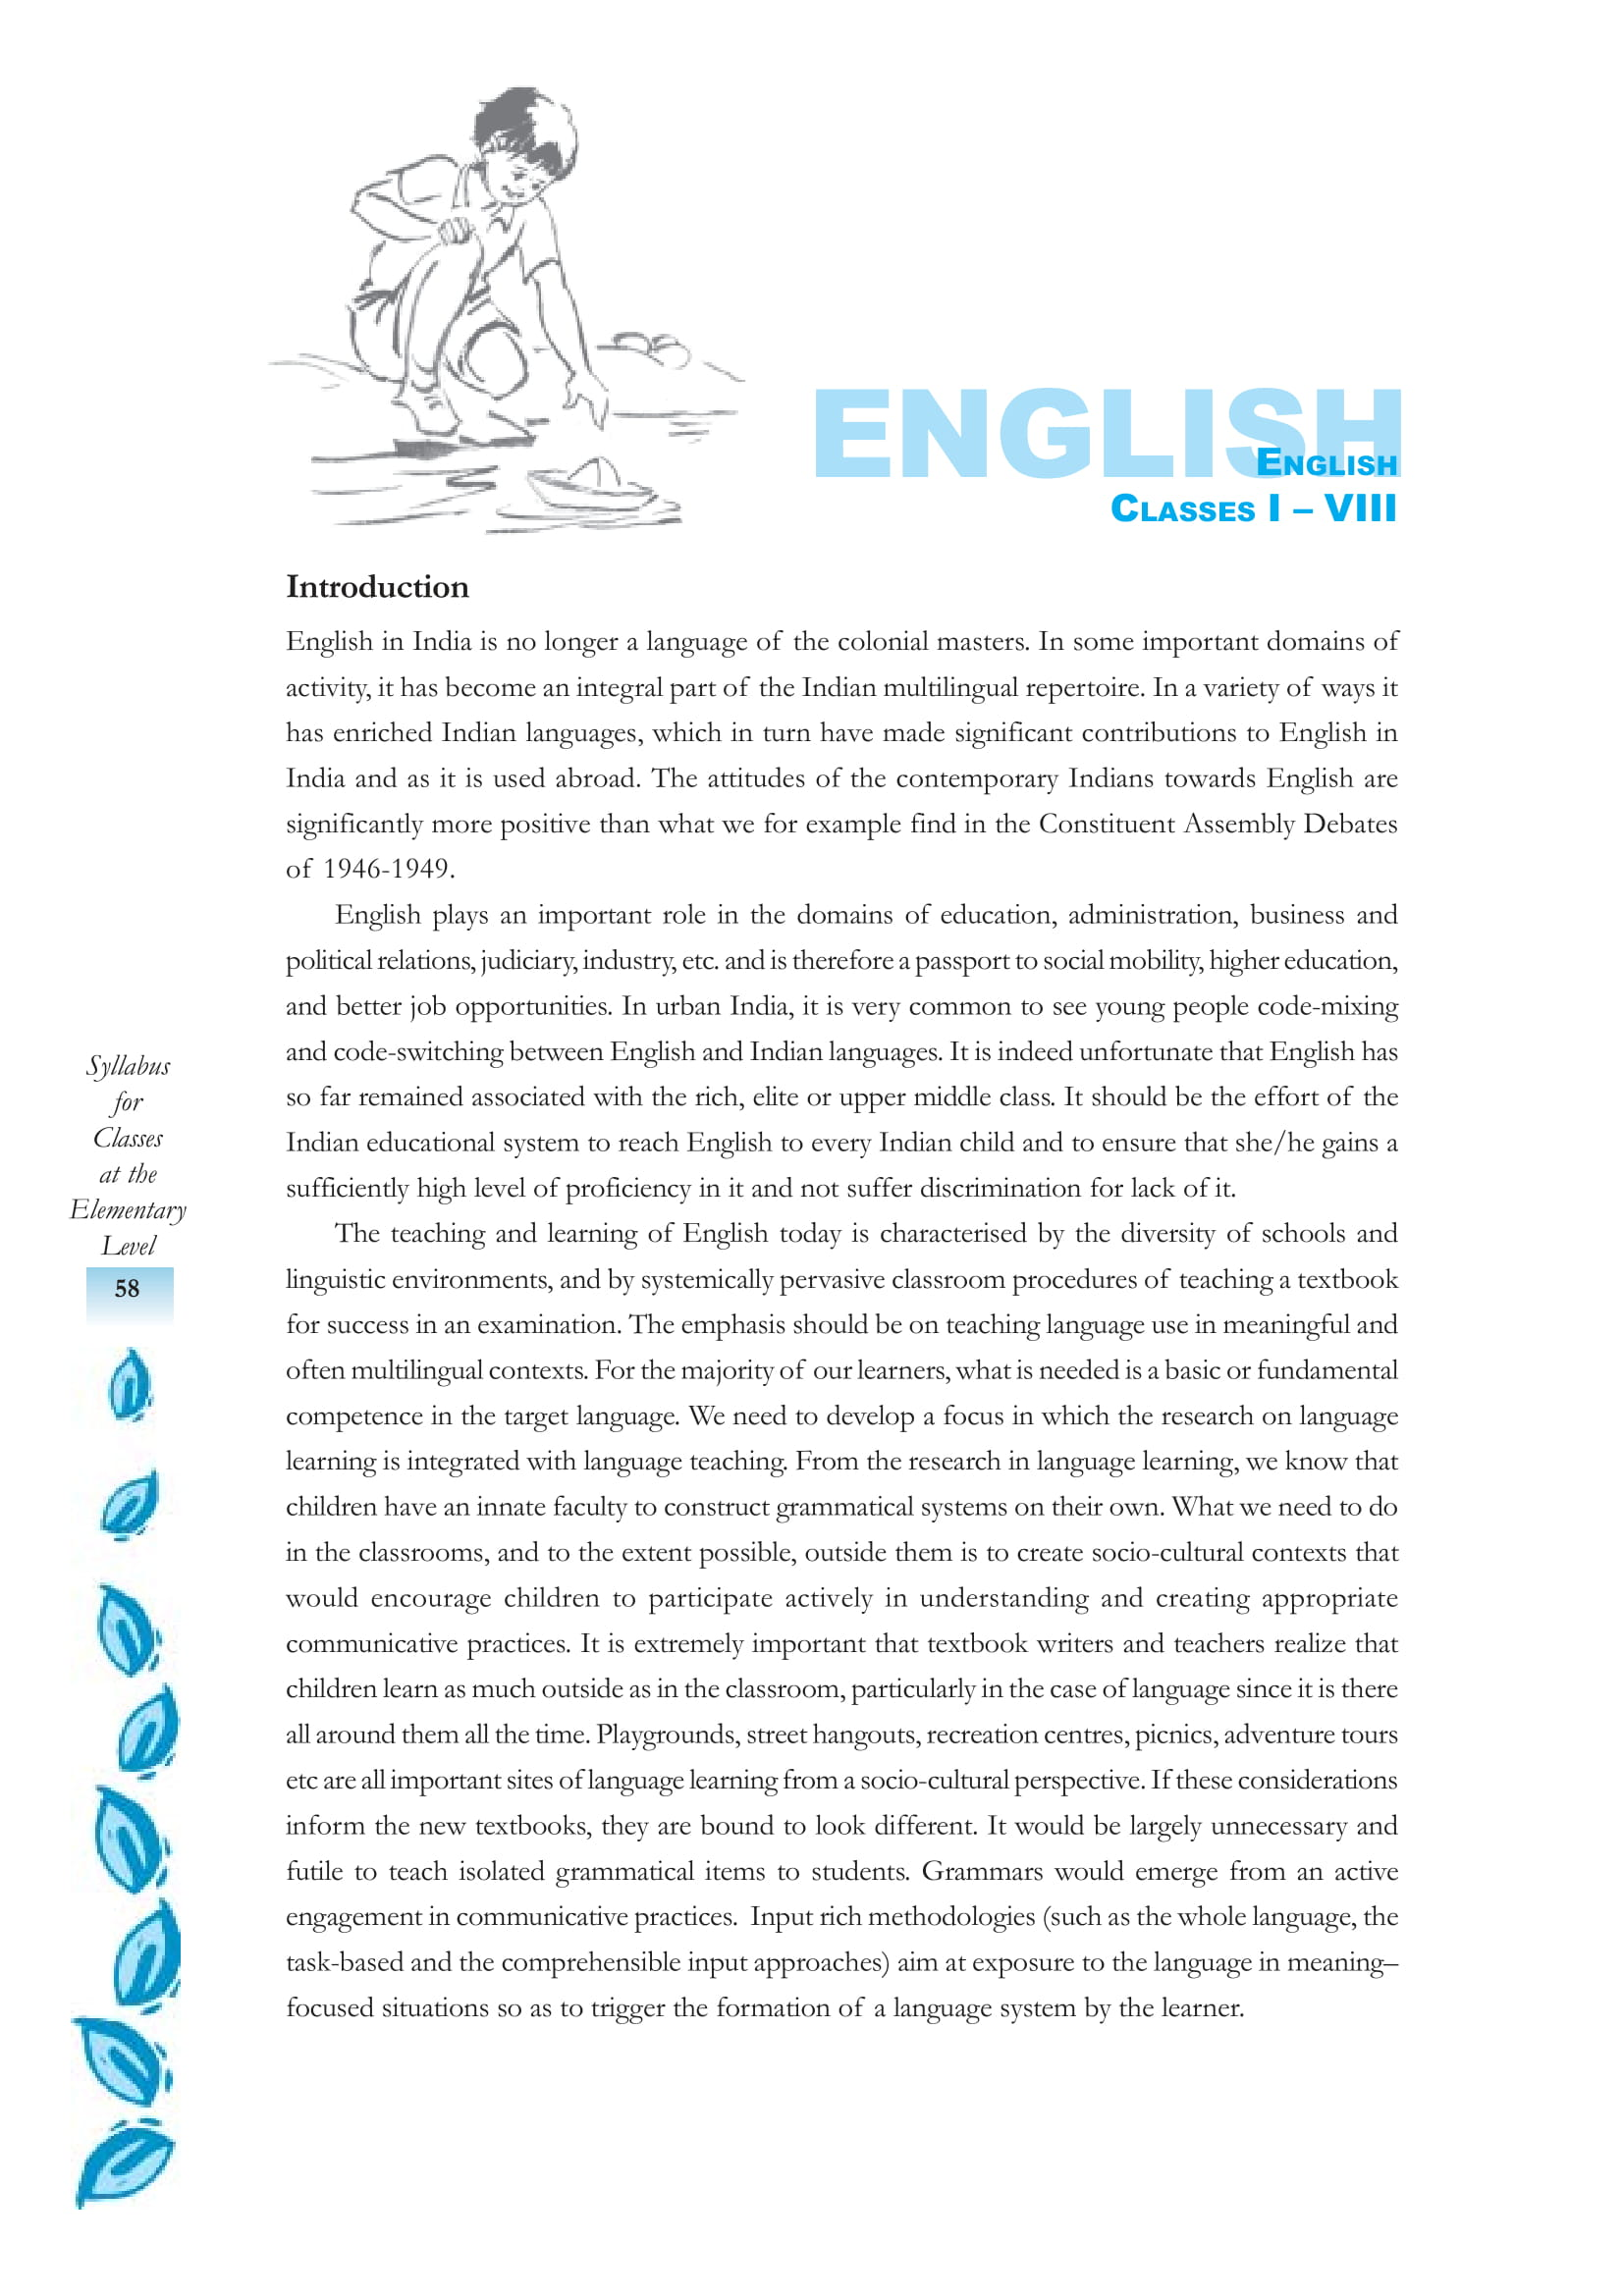 CBSE Syllabus For English Classes 1, 2, 3, 4, 5, 6, 7, 8 – New NCERT Pattern at Elementary Level